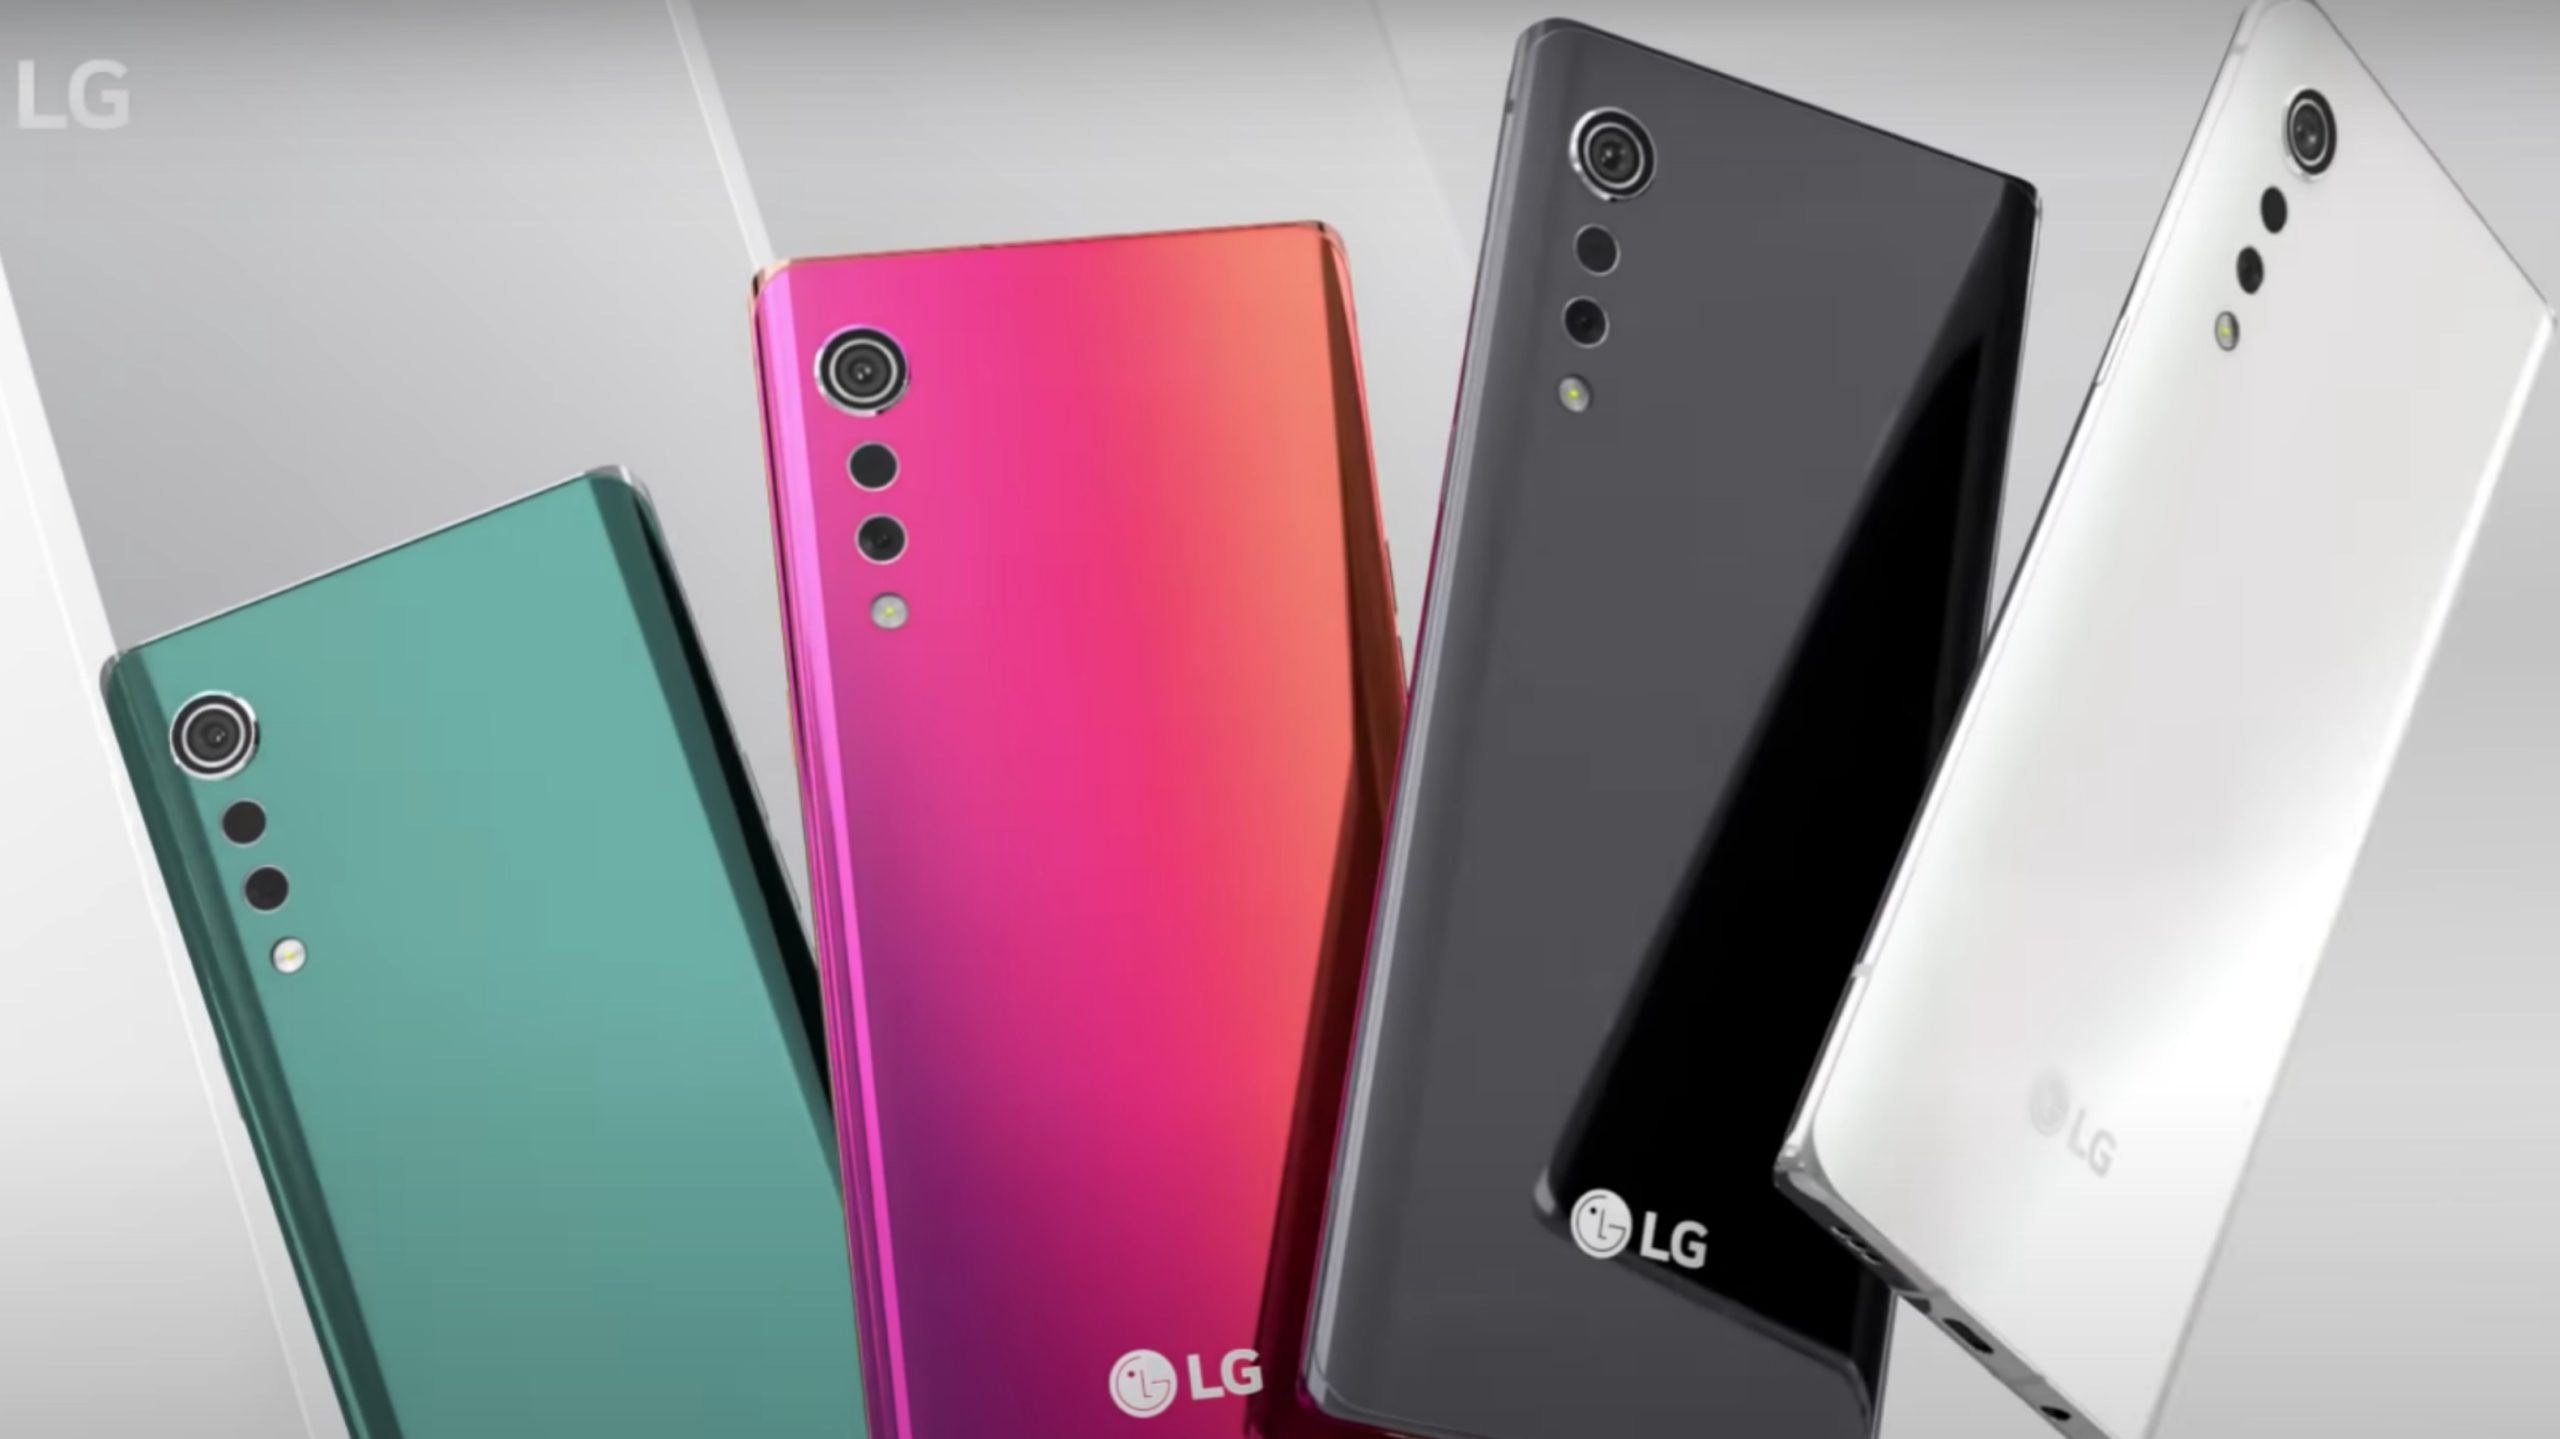 LG's forthcoming outrageous cell phone